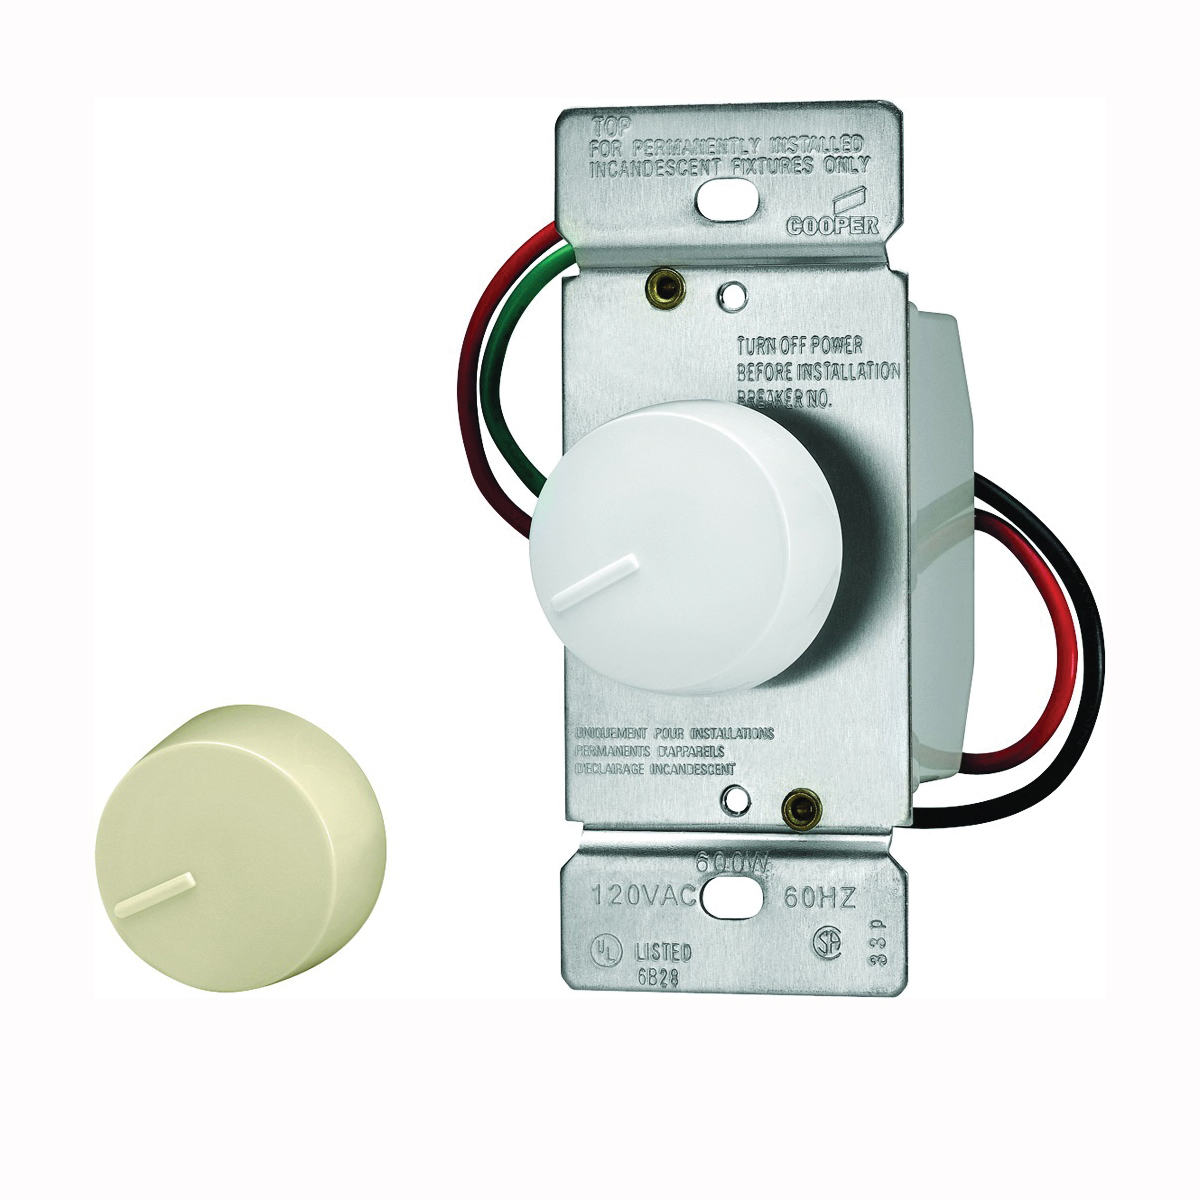 Picture of Eaton Wiring Devices RI306P-VW-K2 Rotary Dimmer, 20 A, 120 V, 600 W, 3-Way, Ivory/White